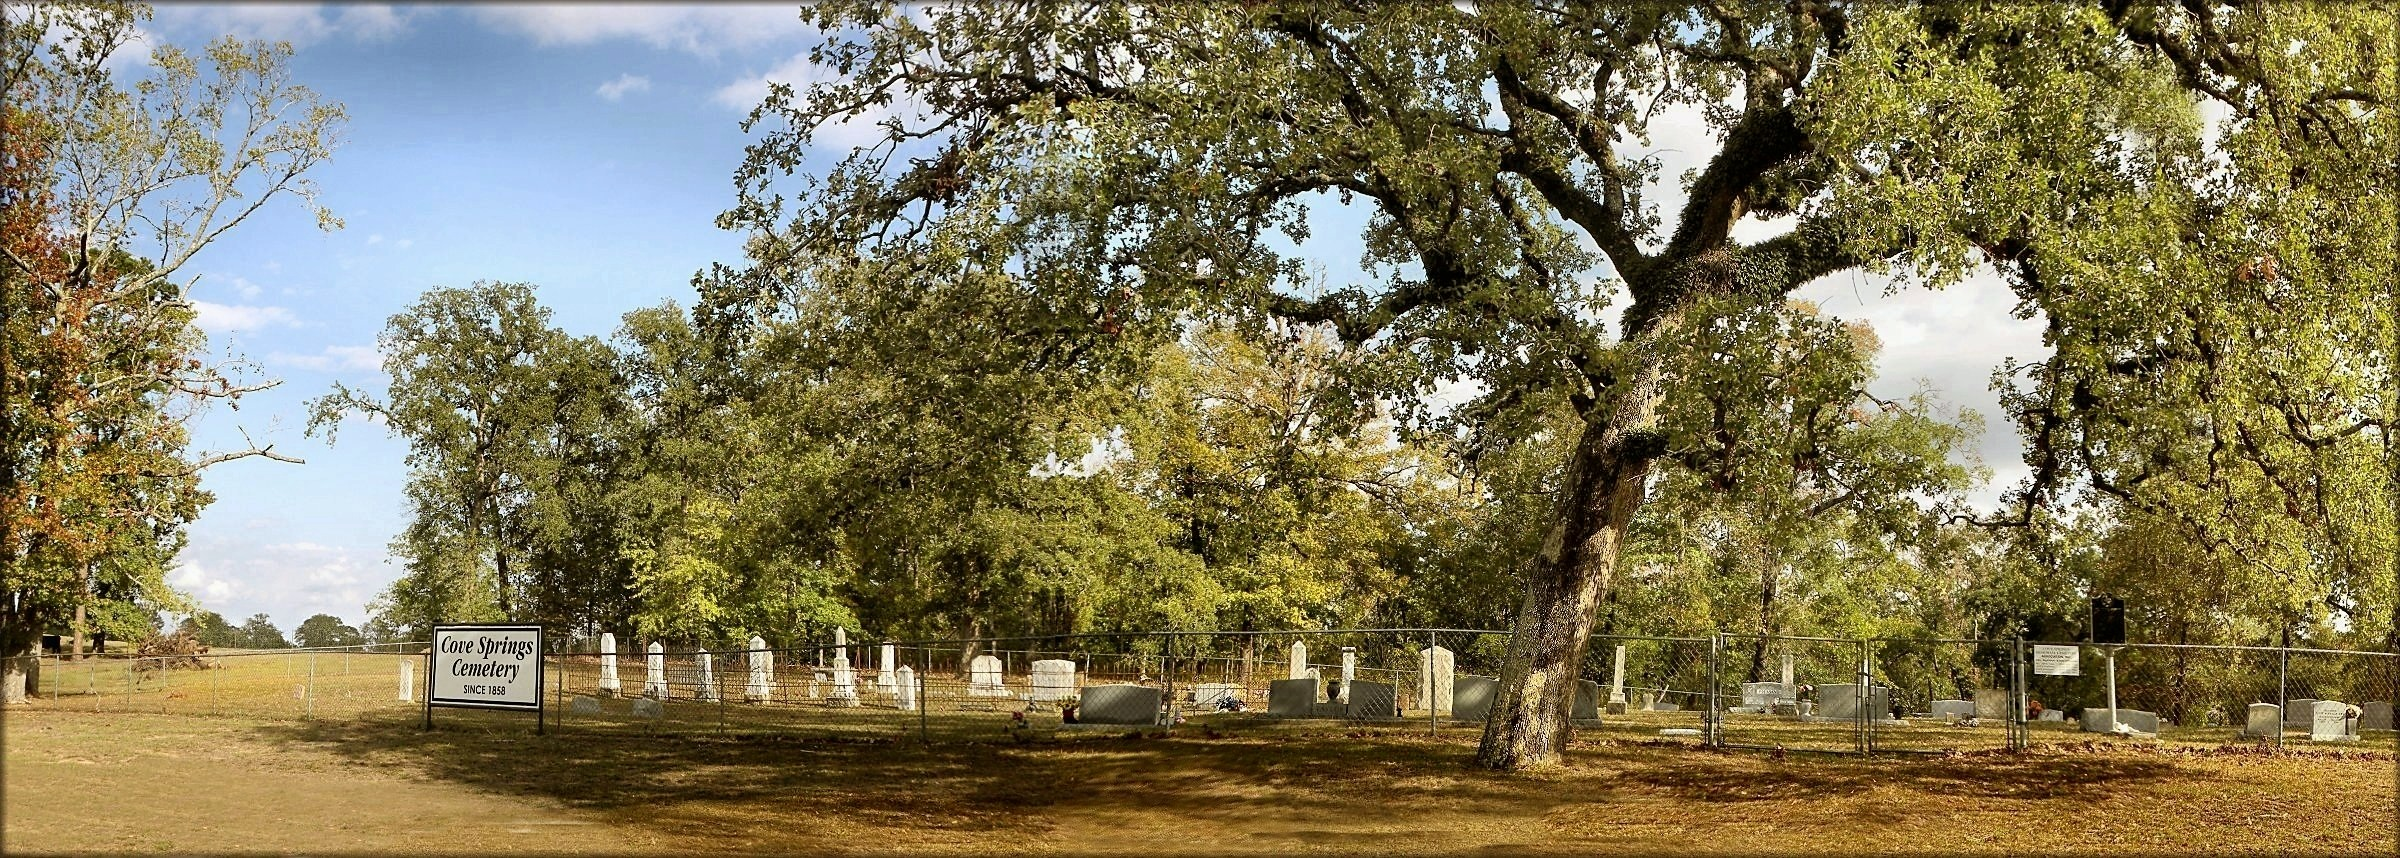 Cove Springs Cemetery in Historic Nacogdoches County, Texas